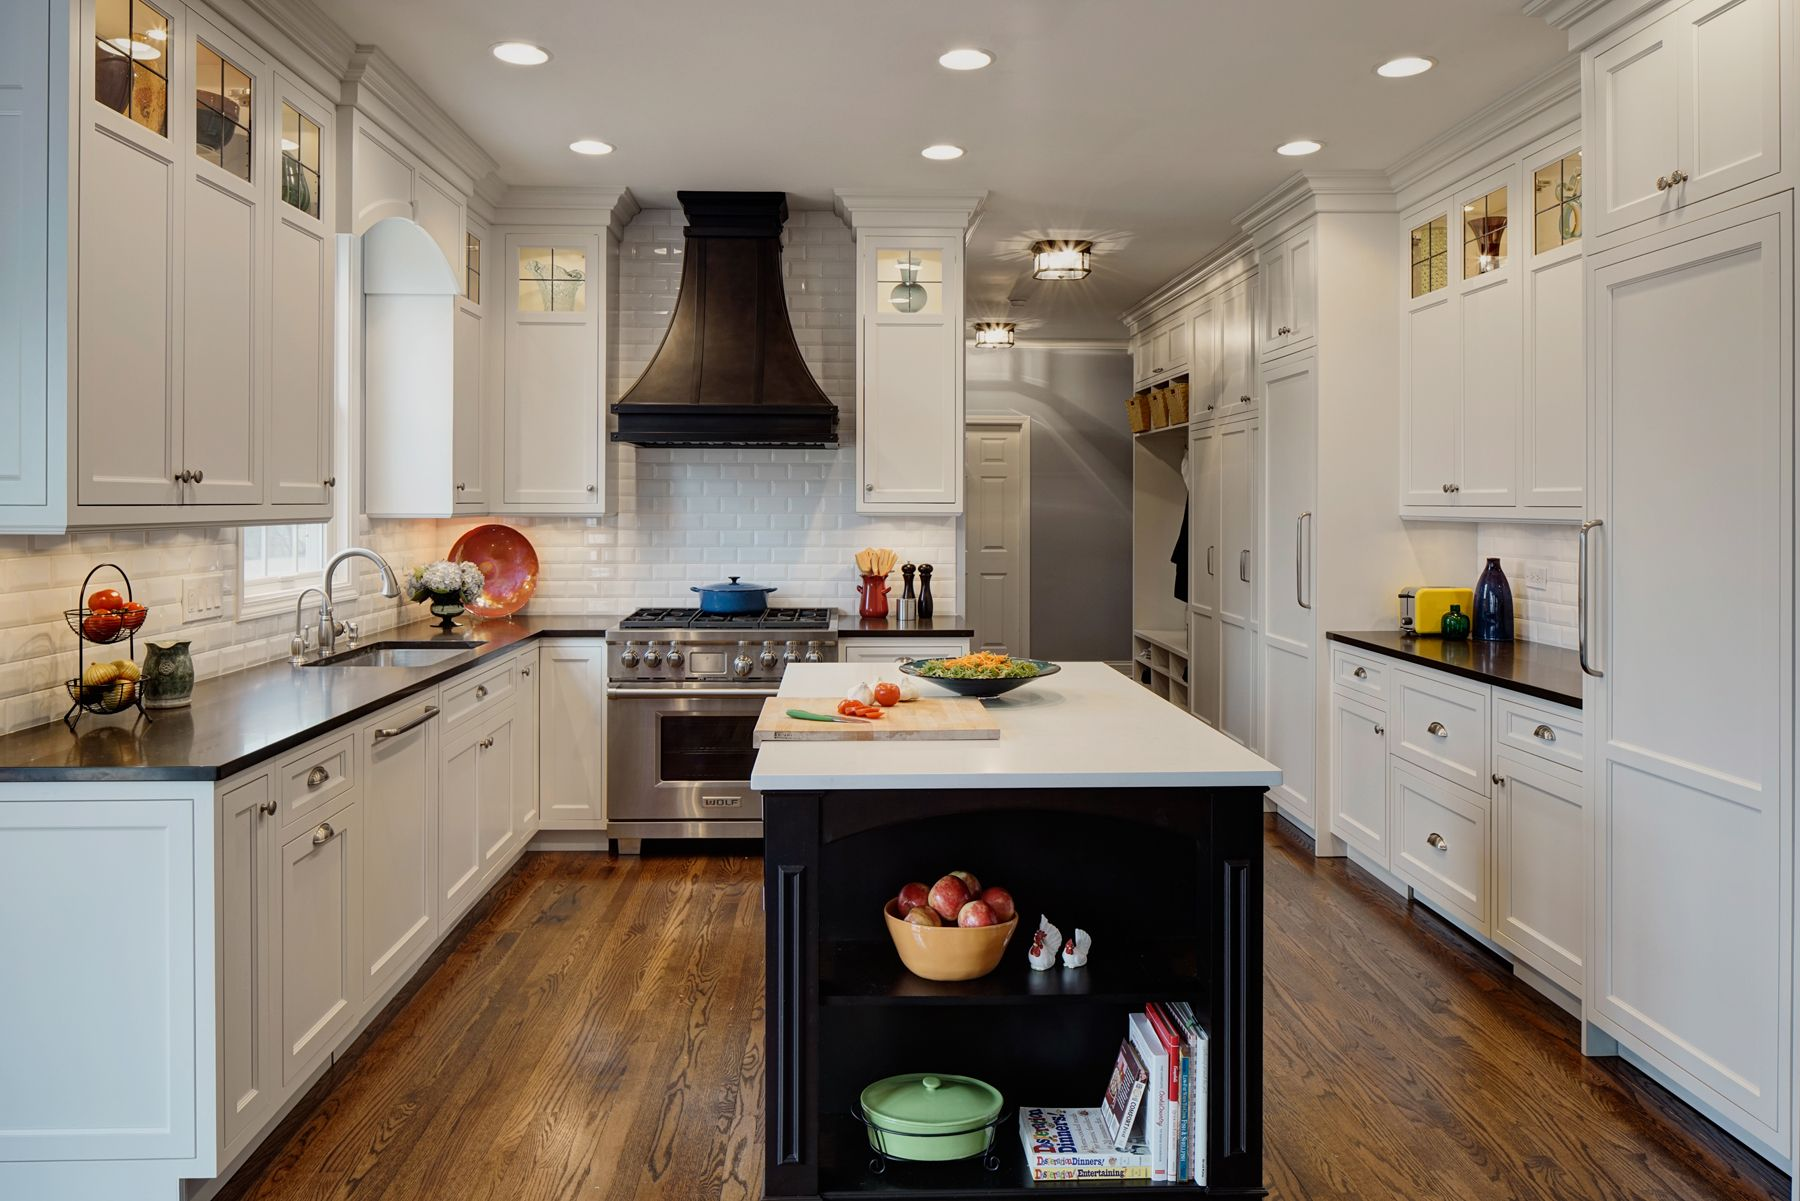 By installing recessed can lights uniformly throughout the space instead of decorative pendants above the island, the kitchen appears more open and spacious. From drurydesigns.com